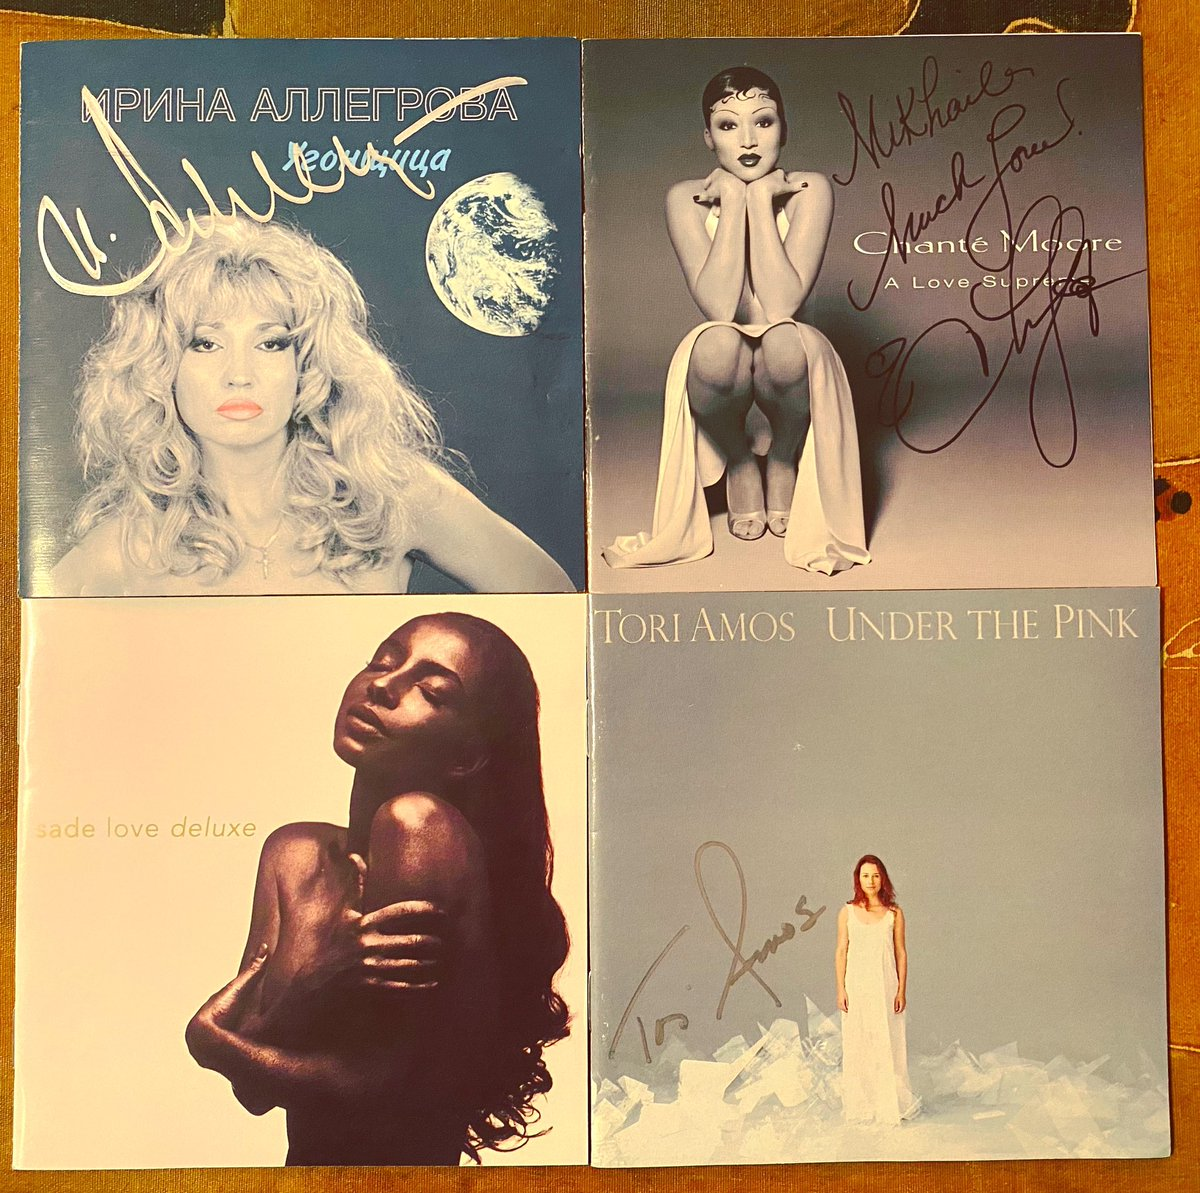 When it comes to full length brilliant albums by the ladies, these would be my Top 4 records I can enjoy start to finish ... with no filler. 3 out of 4 are hand signed by the artists. #Allegrova #Sade #ChanteMoore #ToriAmos #Brilliance #PerfectRecords  3/4 are sophomore albums.